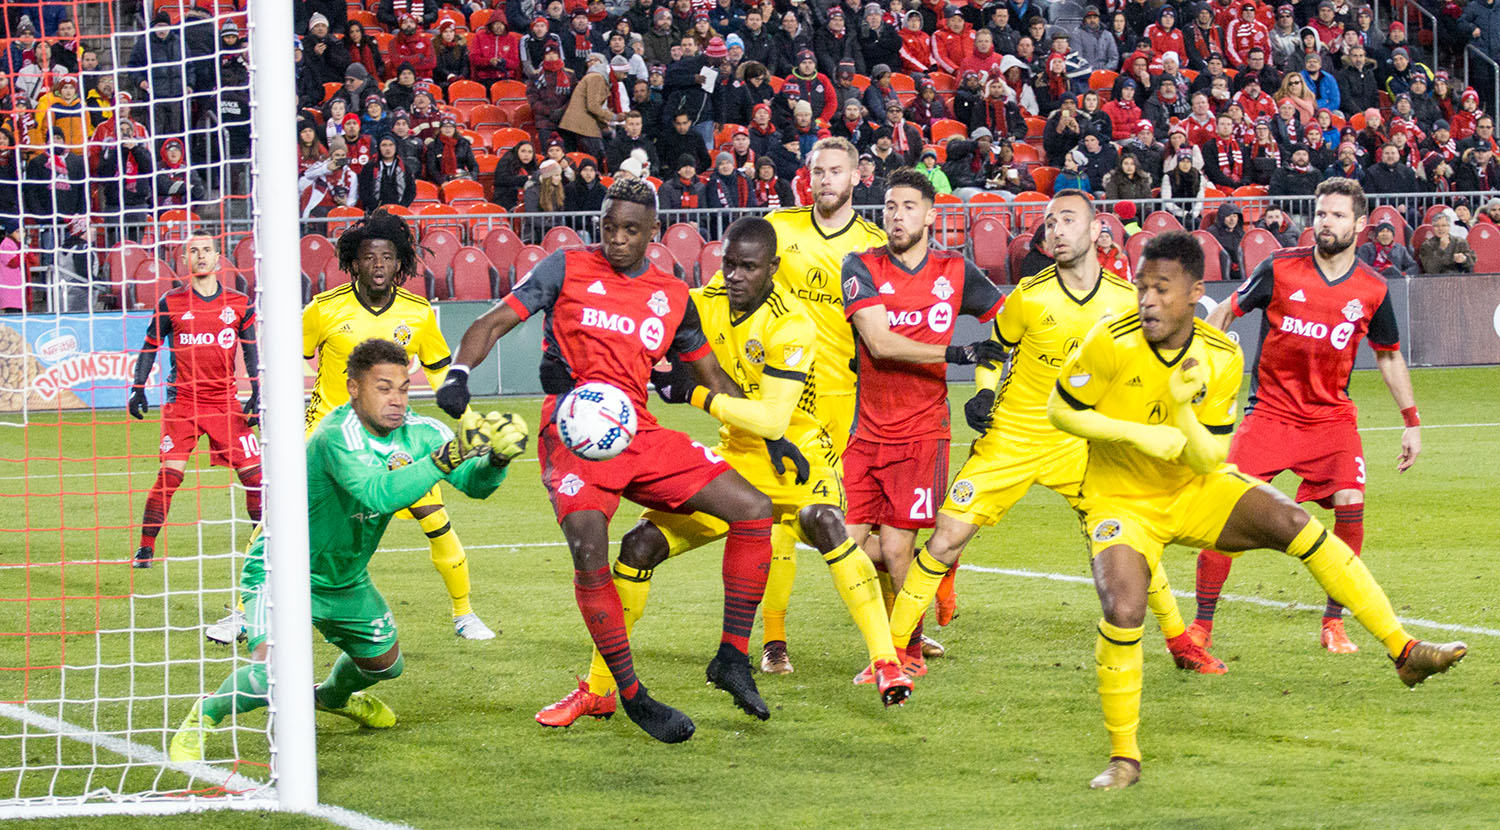 Columbus Crew goalkeeper Zack Steffen punches the ball away from danger as both Toronto FC and Columbus Crew crowd the 18 yard box.Image by Dennis Marciniak of denMAR Media.